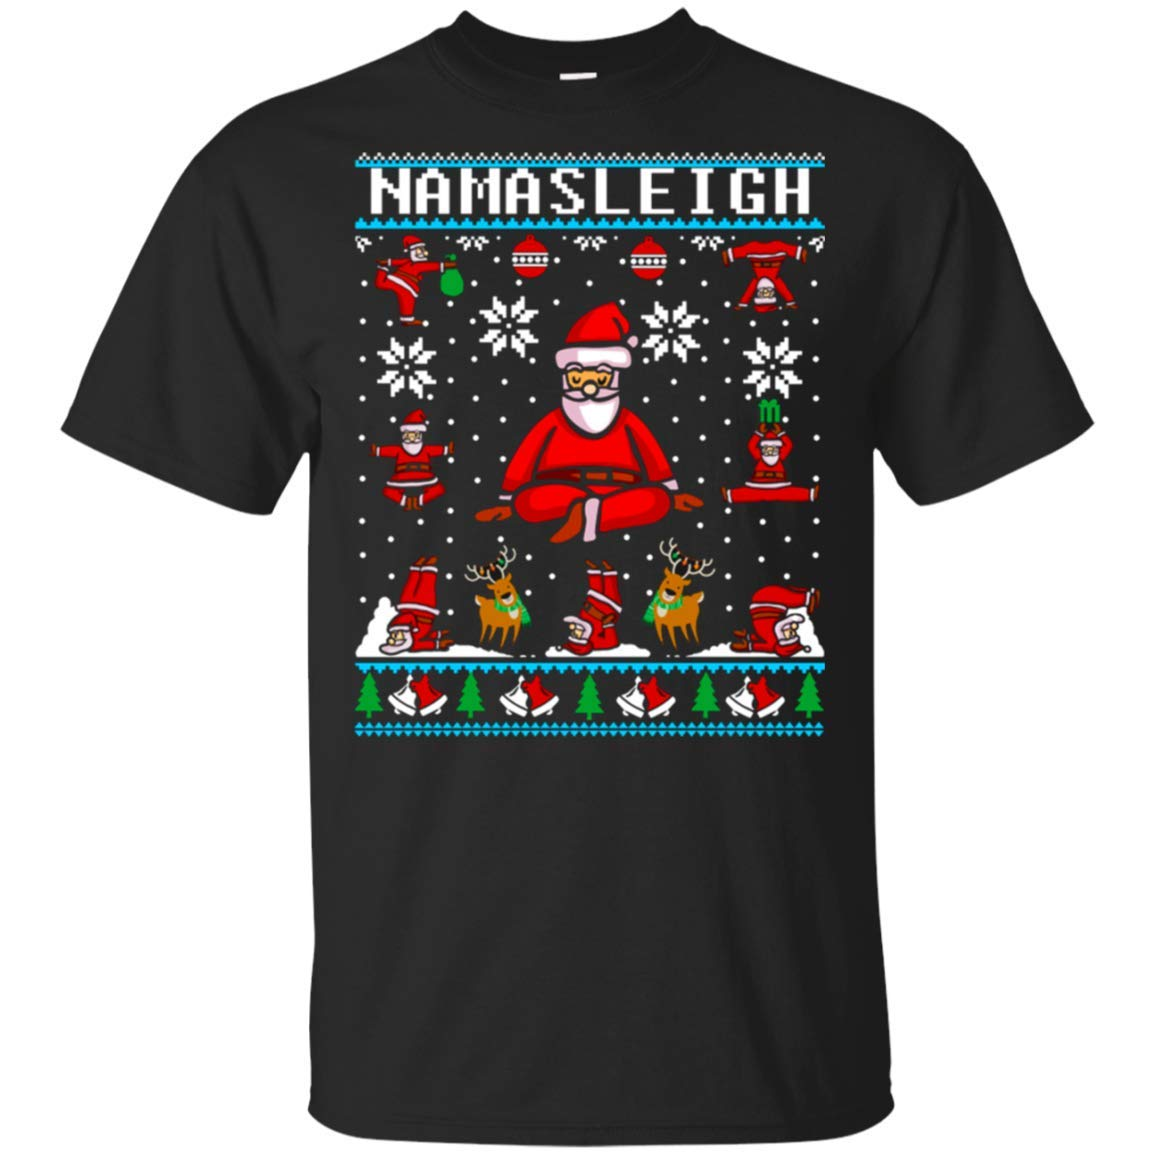 Namasleigh Yoga Funny Christmas Sweater Tshirt Black S5 Awesome Gifts